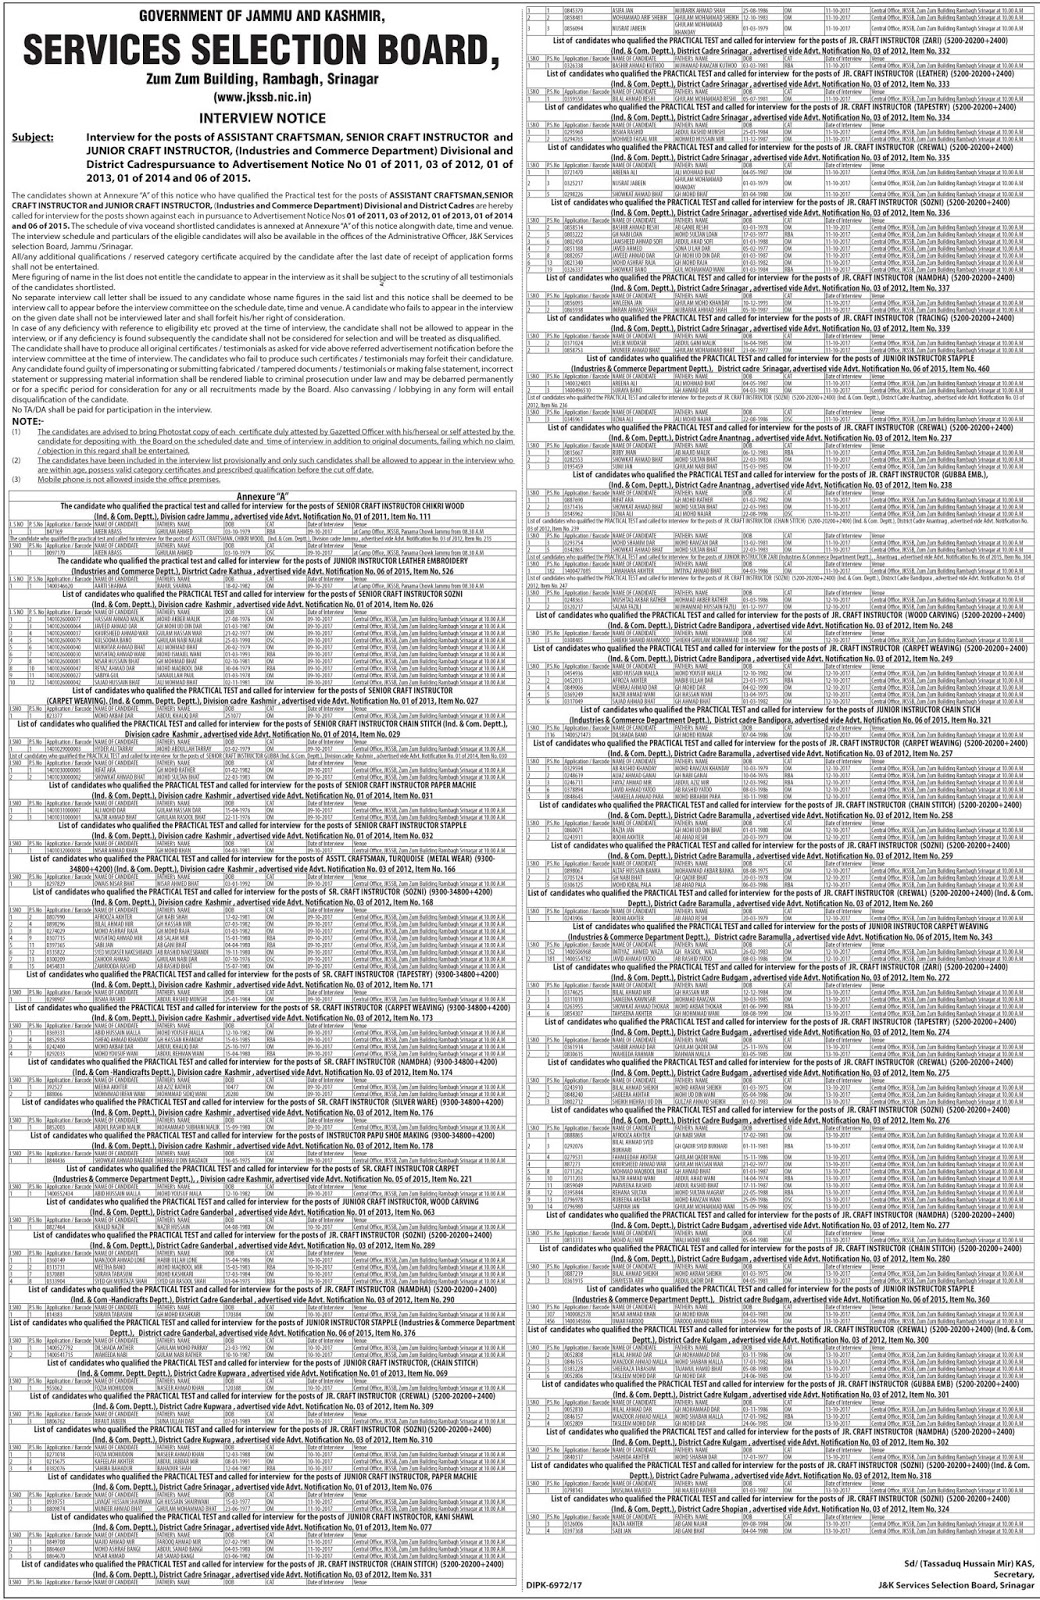 JKSSB Interview Notification for Assistant Accountant Posts in Finance Department